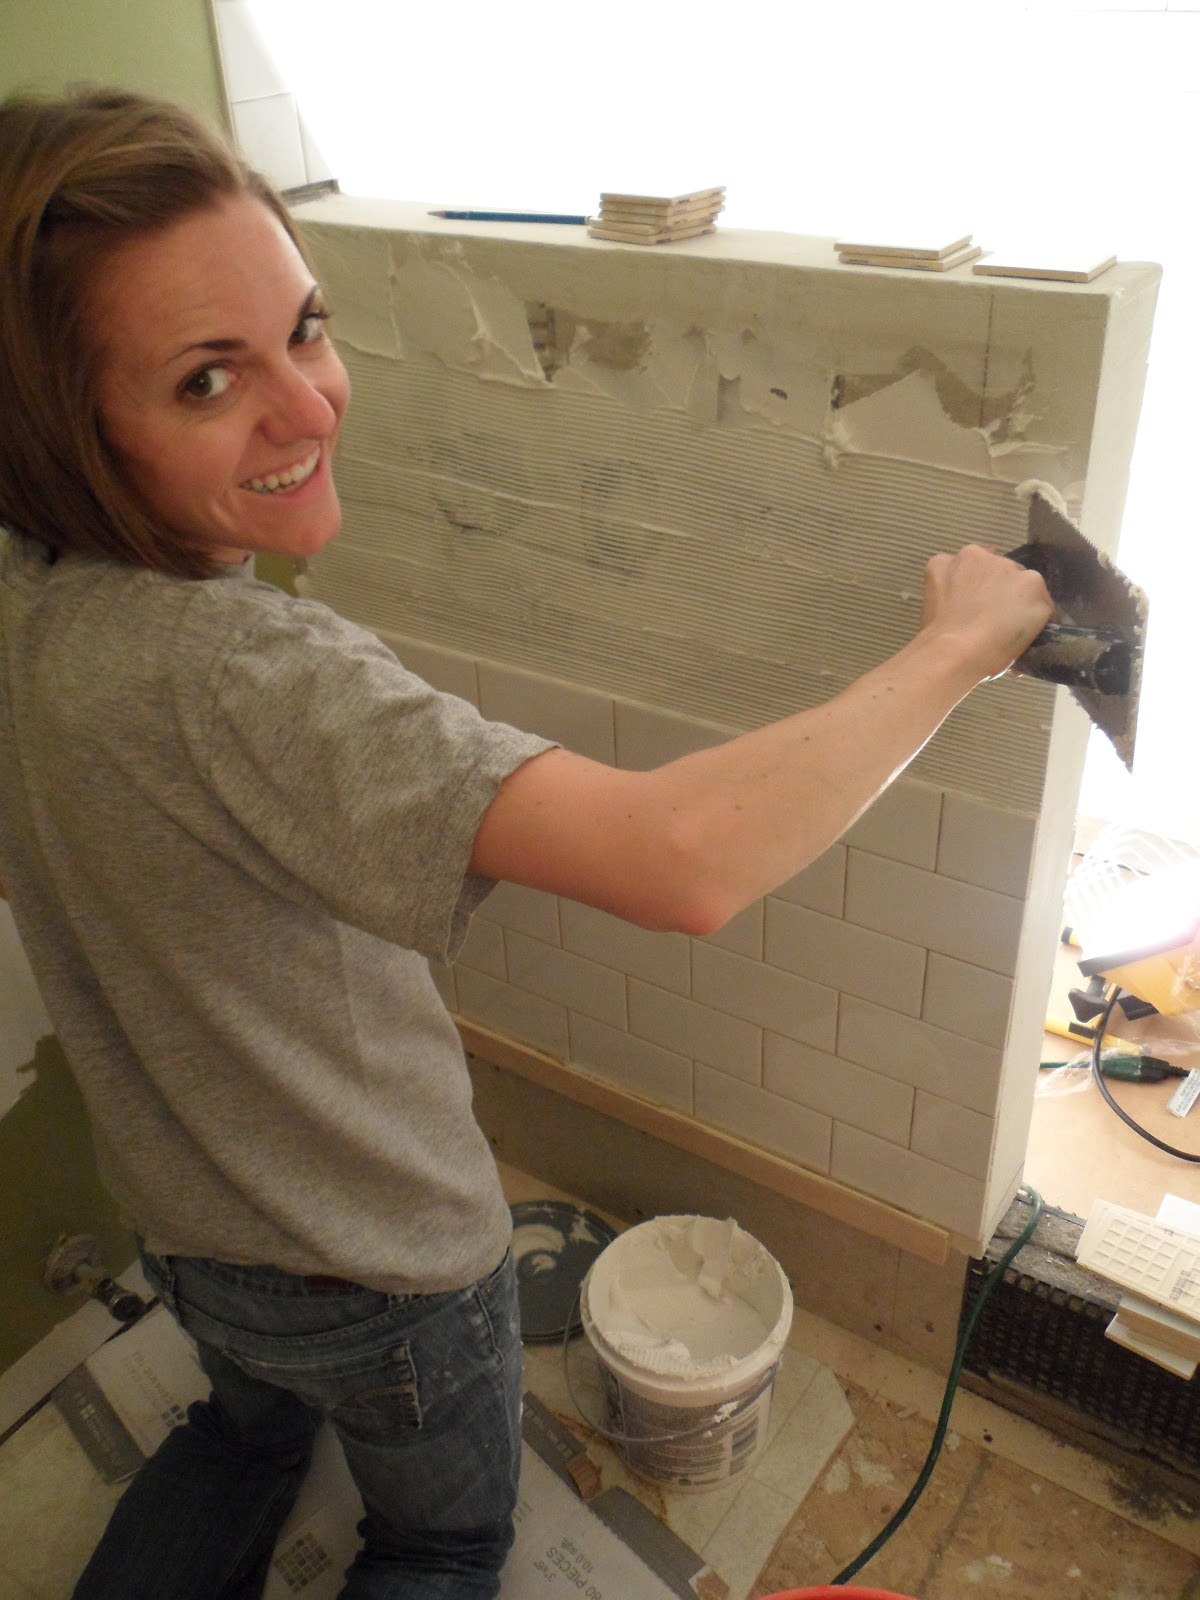 Image Result For How Long Does It Take To Lay Tile Floor